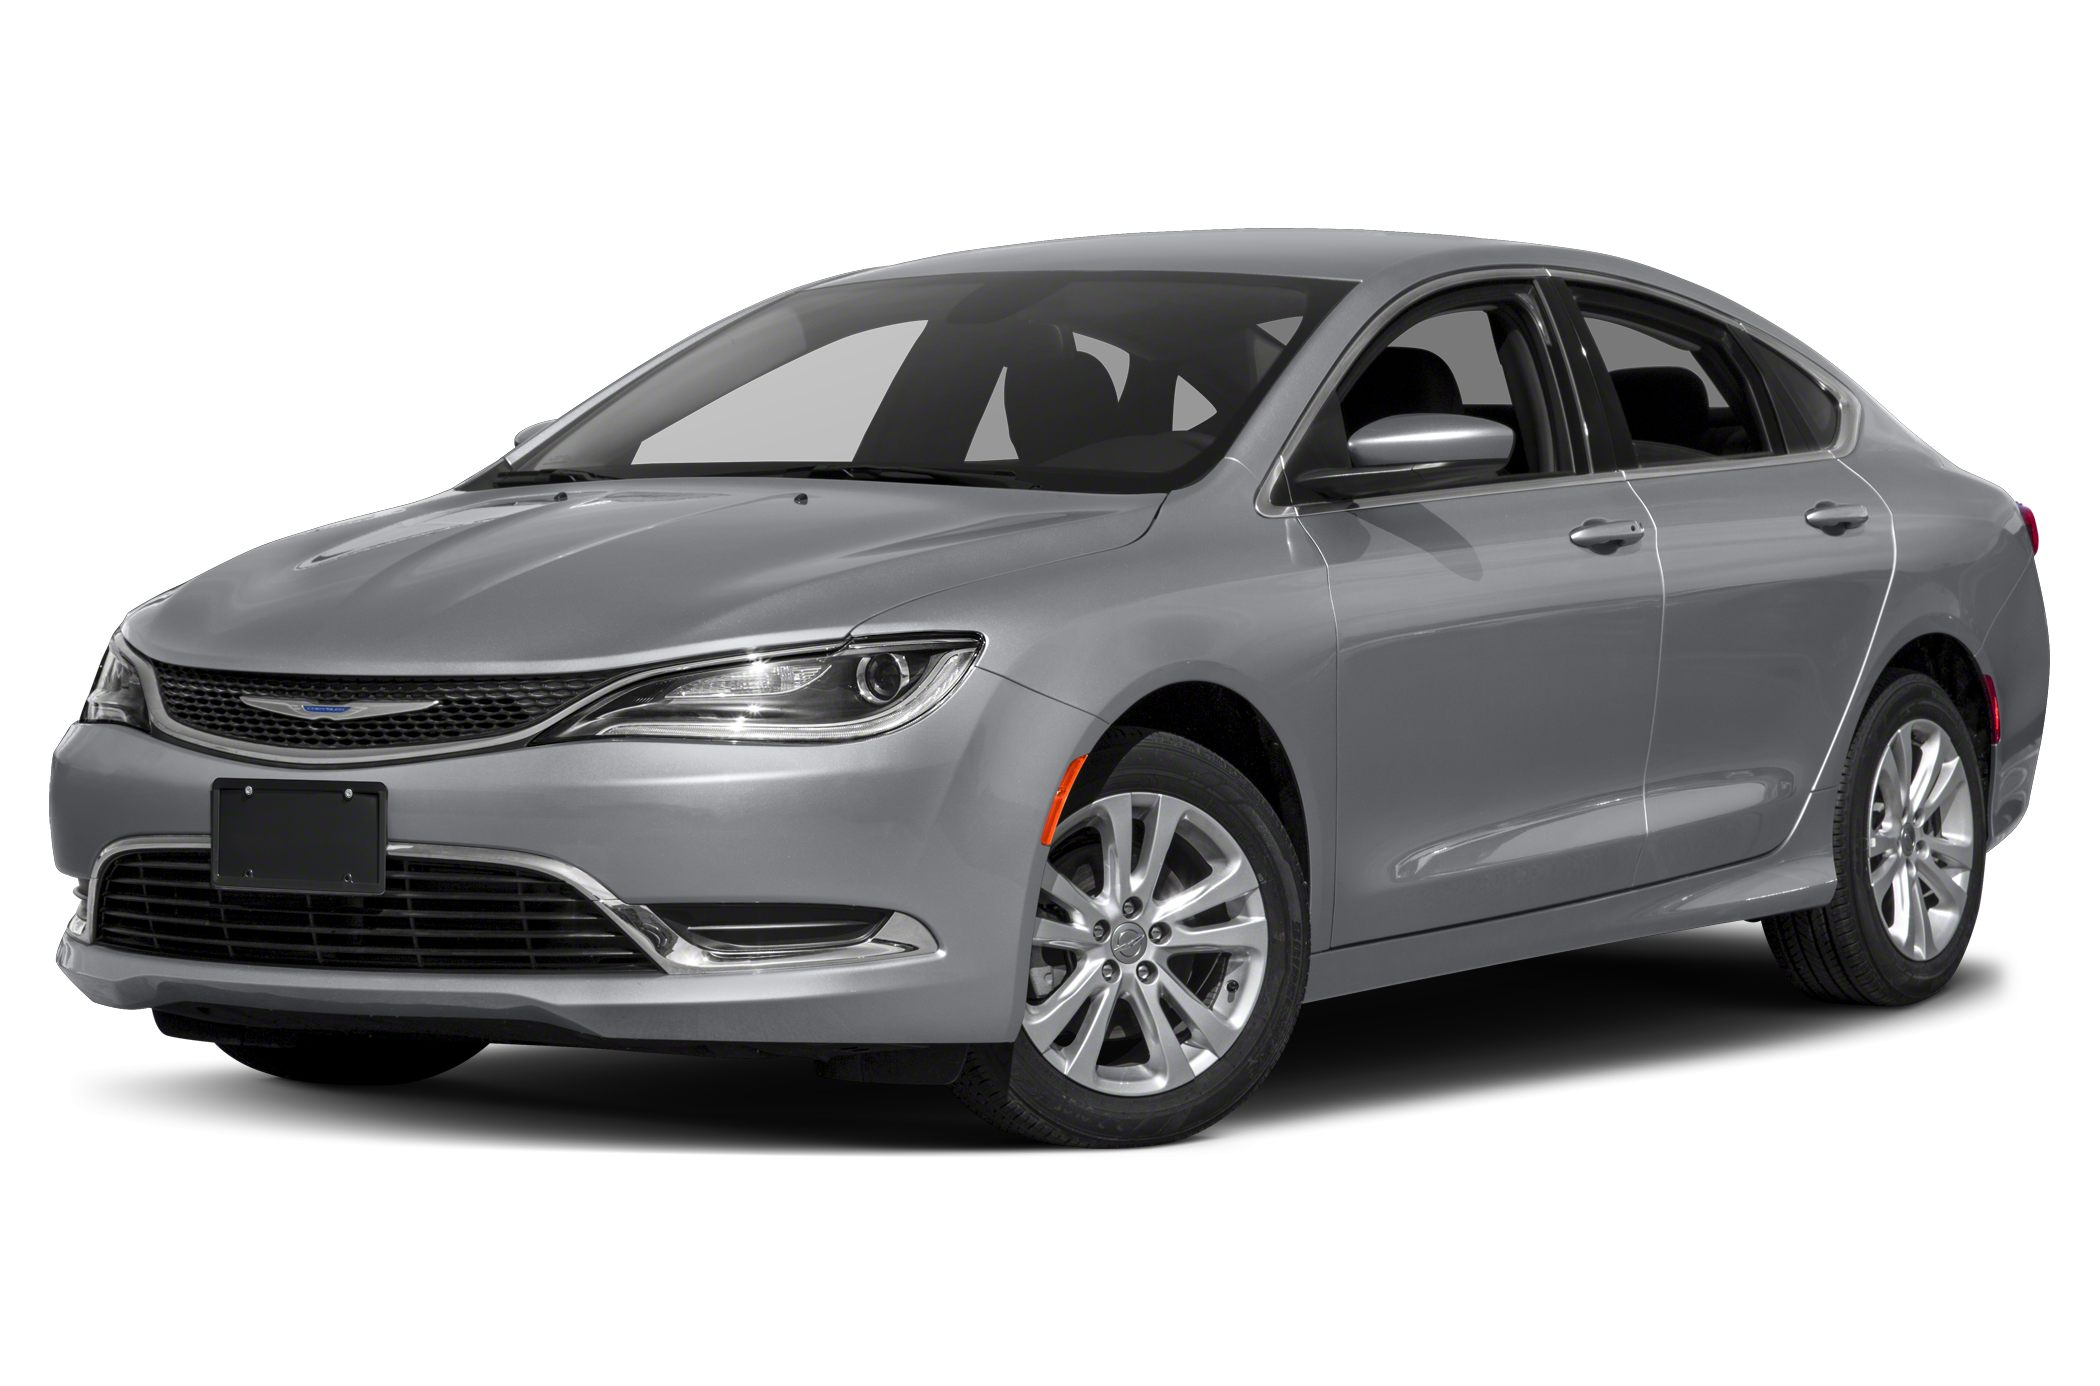 2015 Chrysler 200 Limited Miles 37771Color White Stock U2174 VIN 1C3CCCAB9FN575672